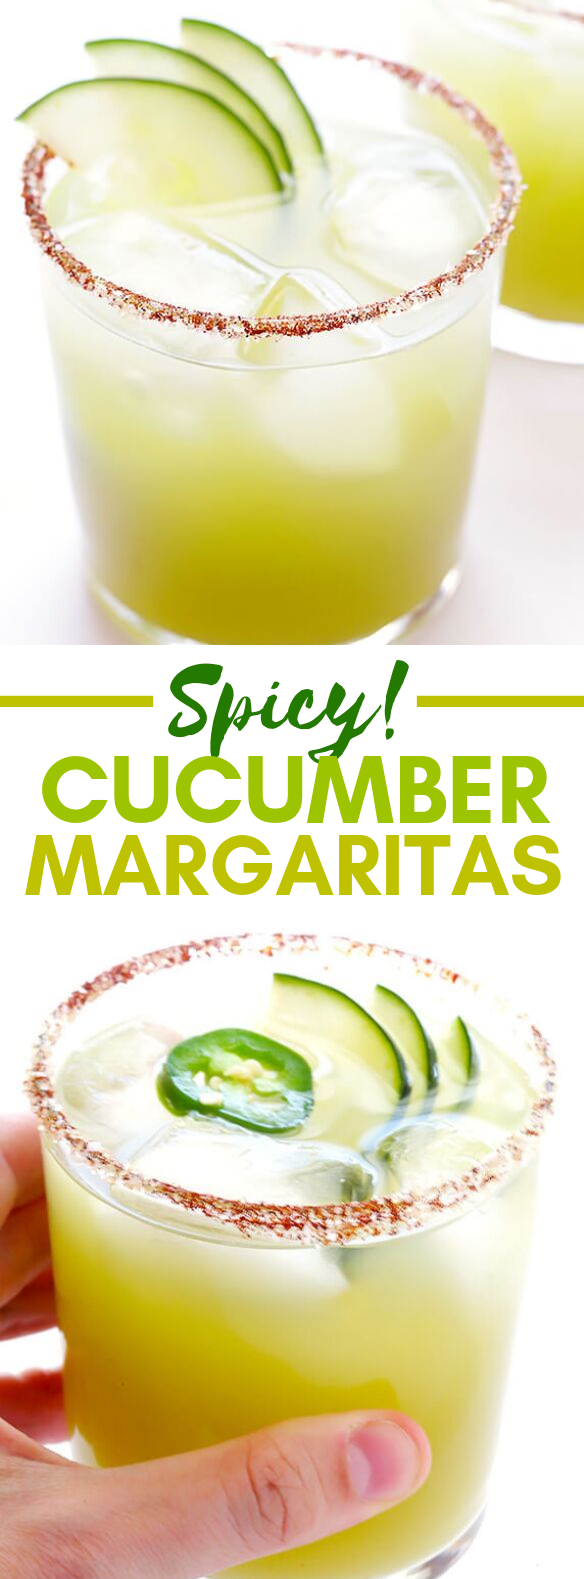 SPICY CUCUMBER MARGARITAS #drinks #cocktail